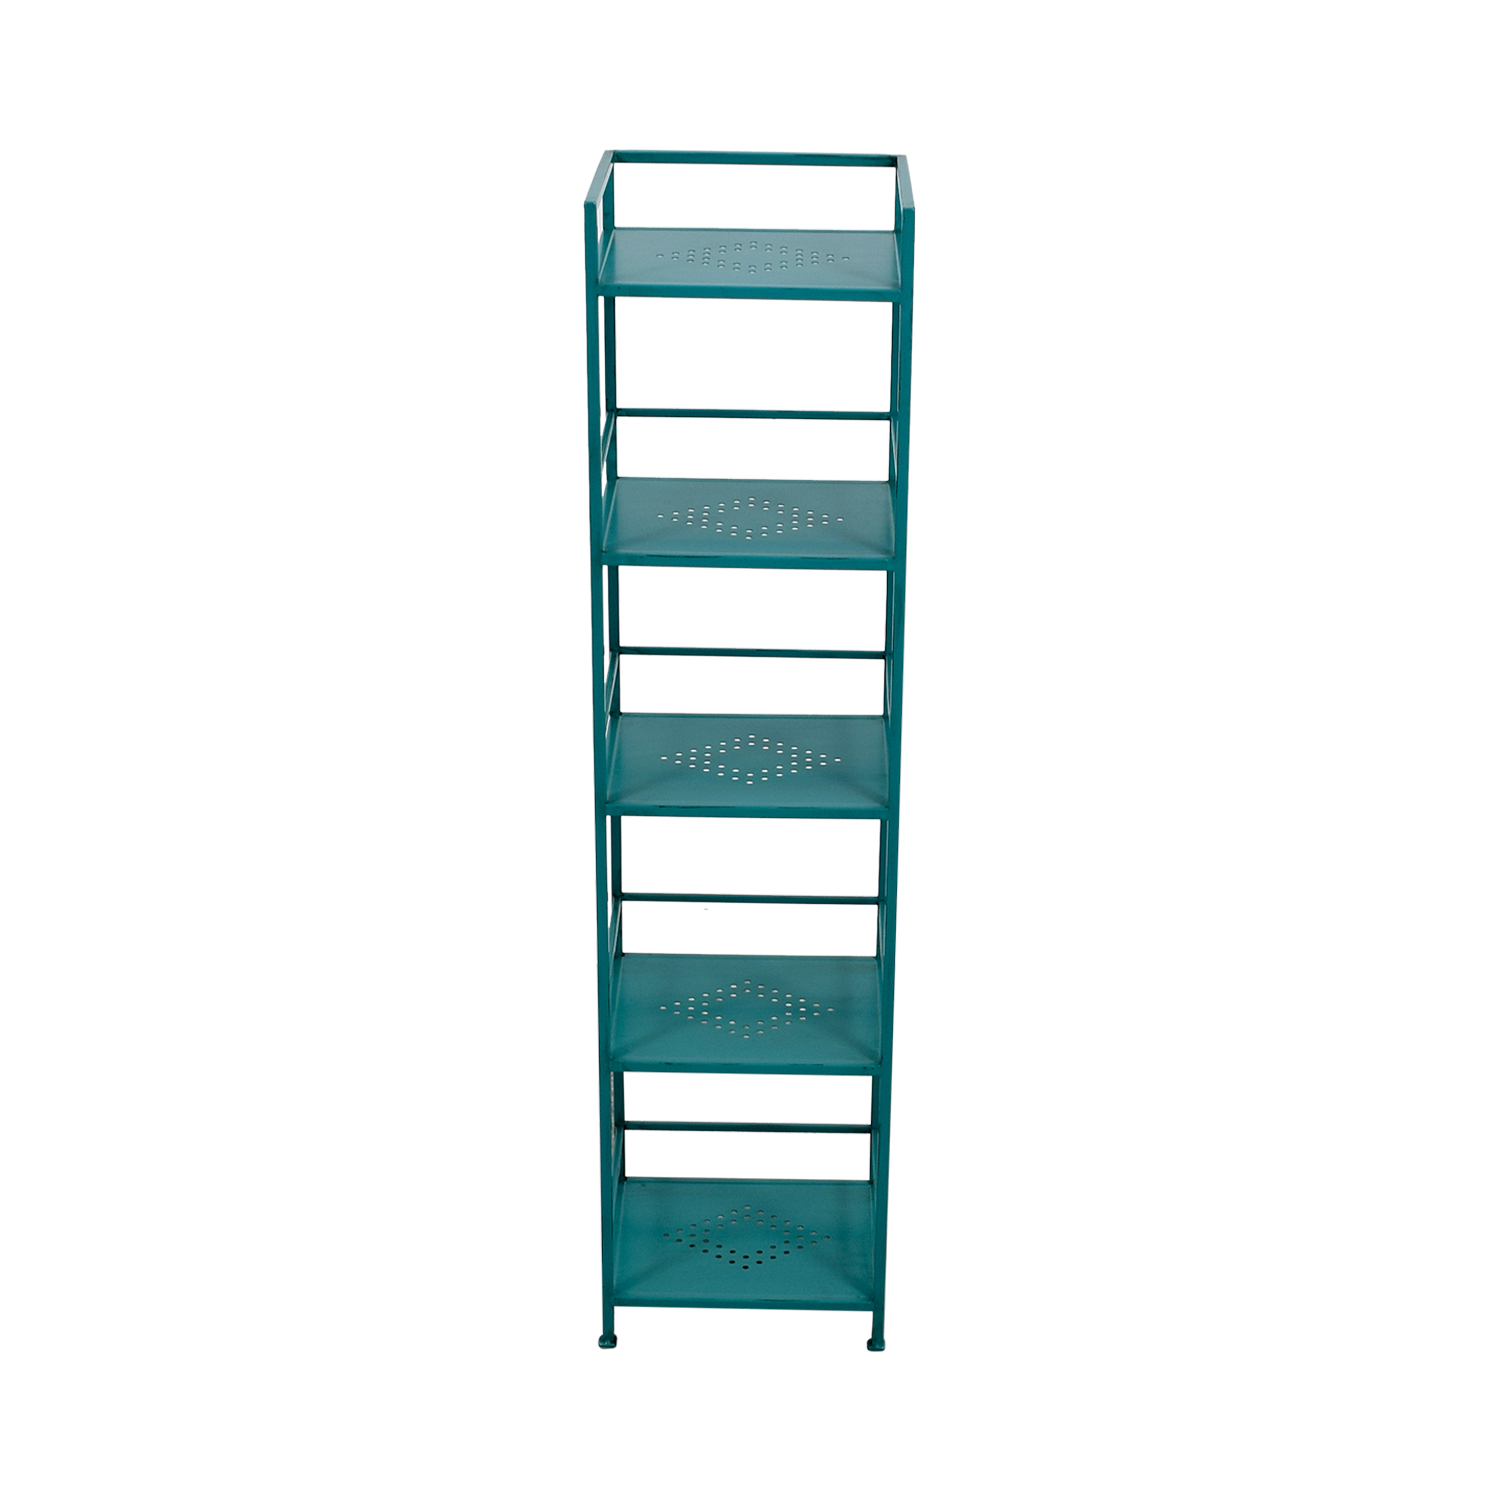 Pier 1 Imports Weldon Turquoise Metal High Shelf / Bookcases & Shelving